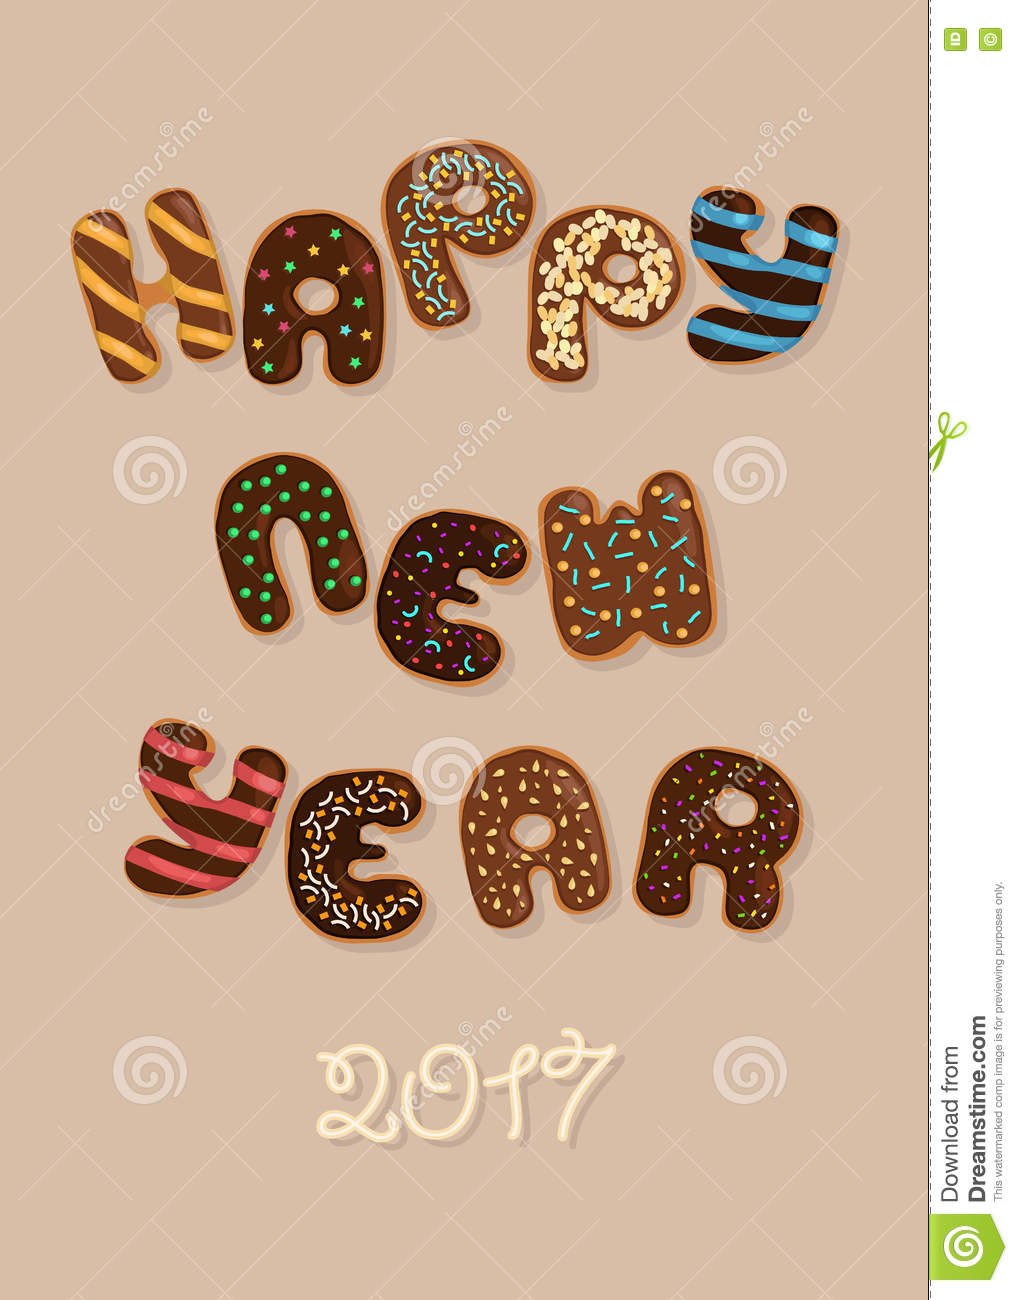 happy new year 2017 chocolate donuts